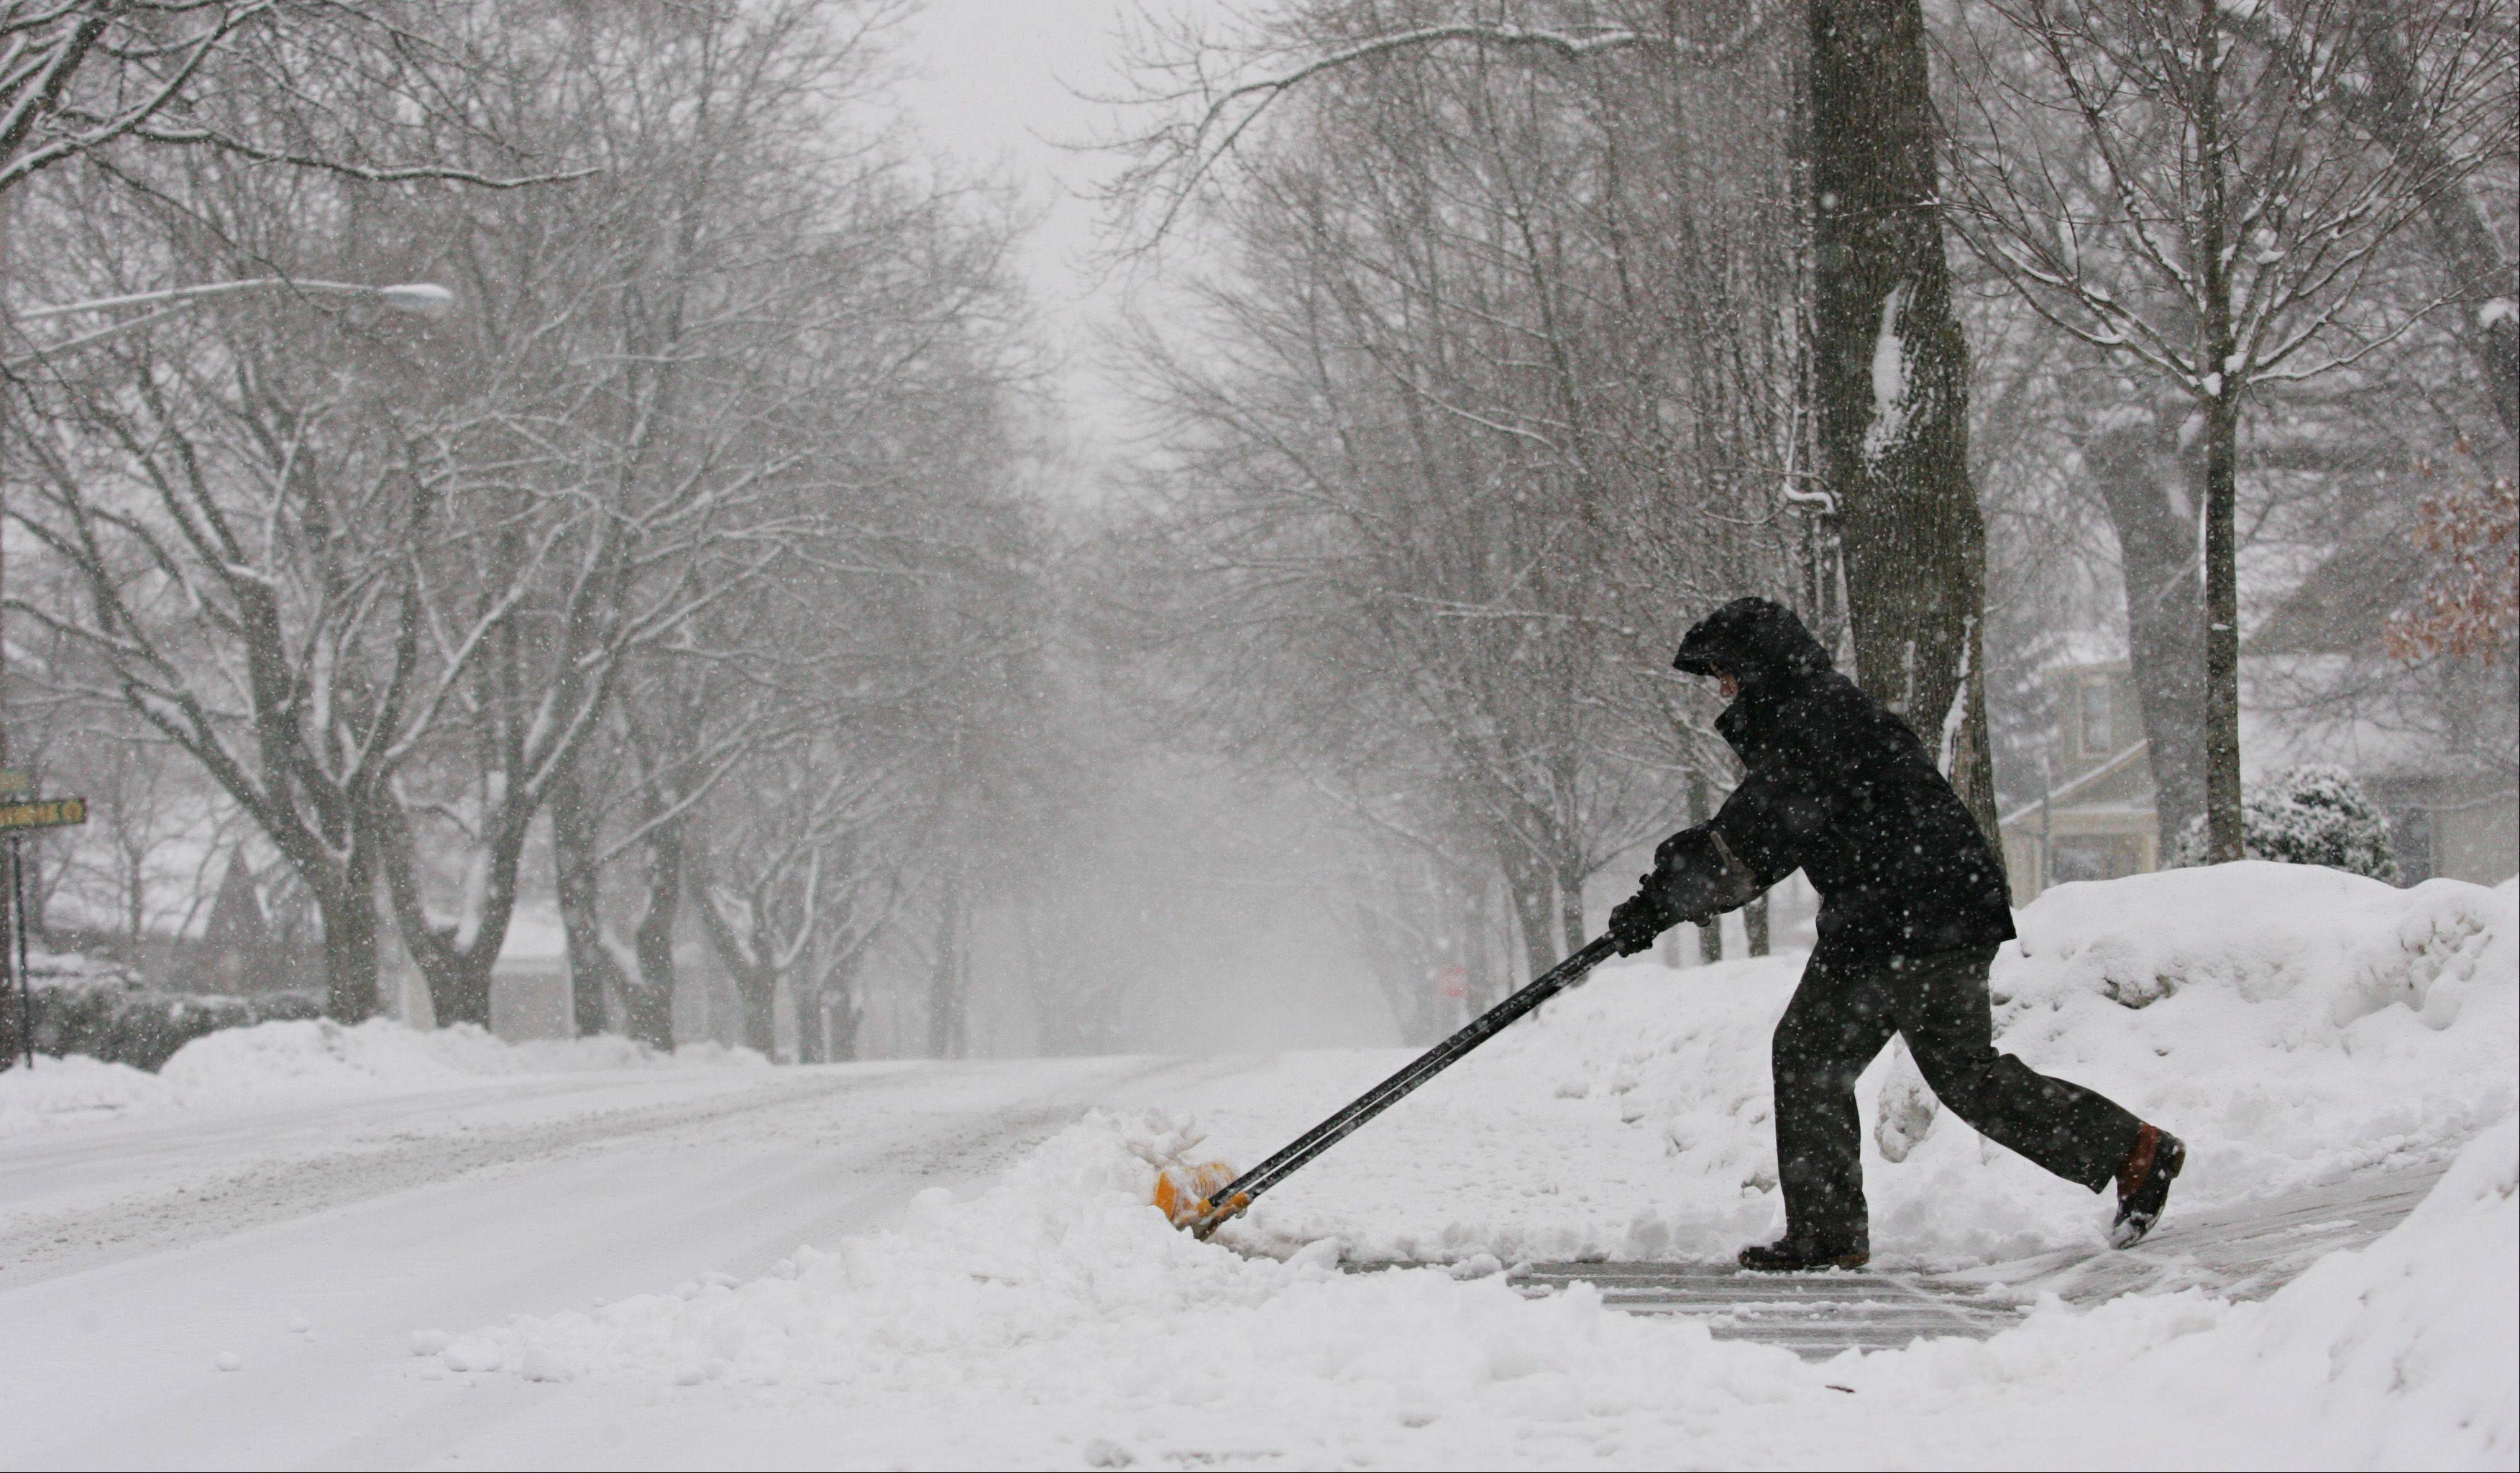 Jay Guevara of West Dundee pushes snow from his driveway into the street Tuesday morning, clearing a path to get out to work.